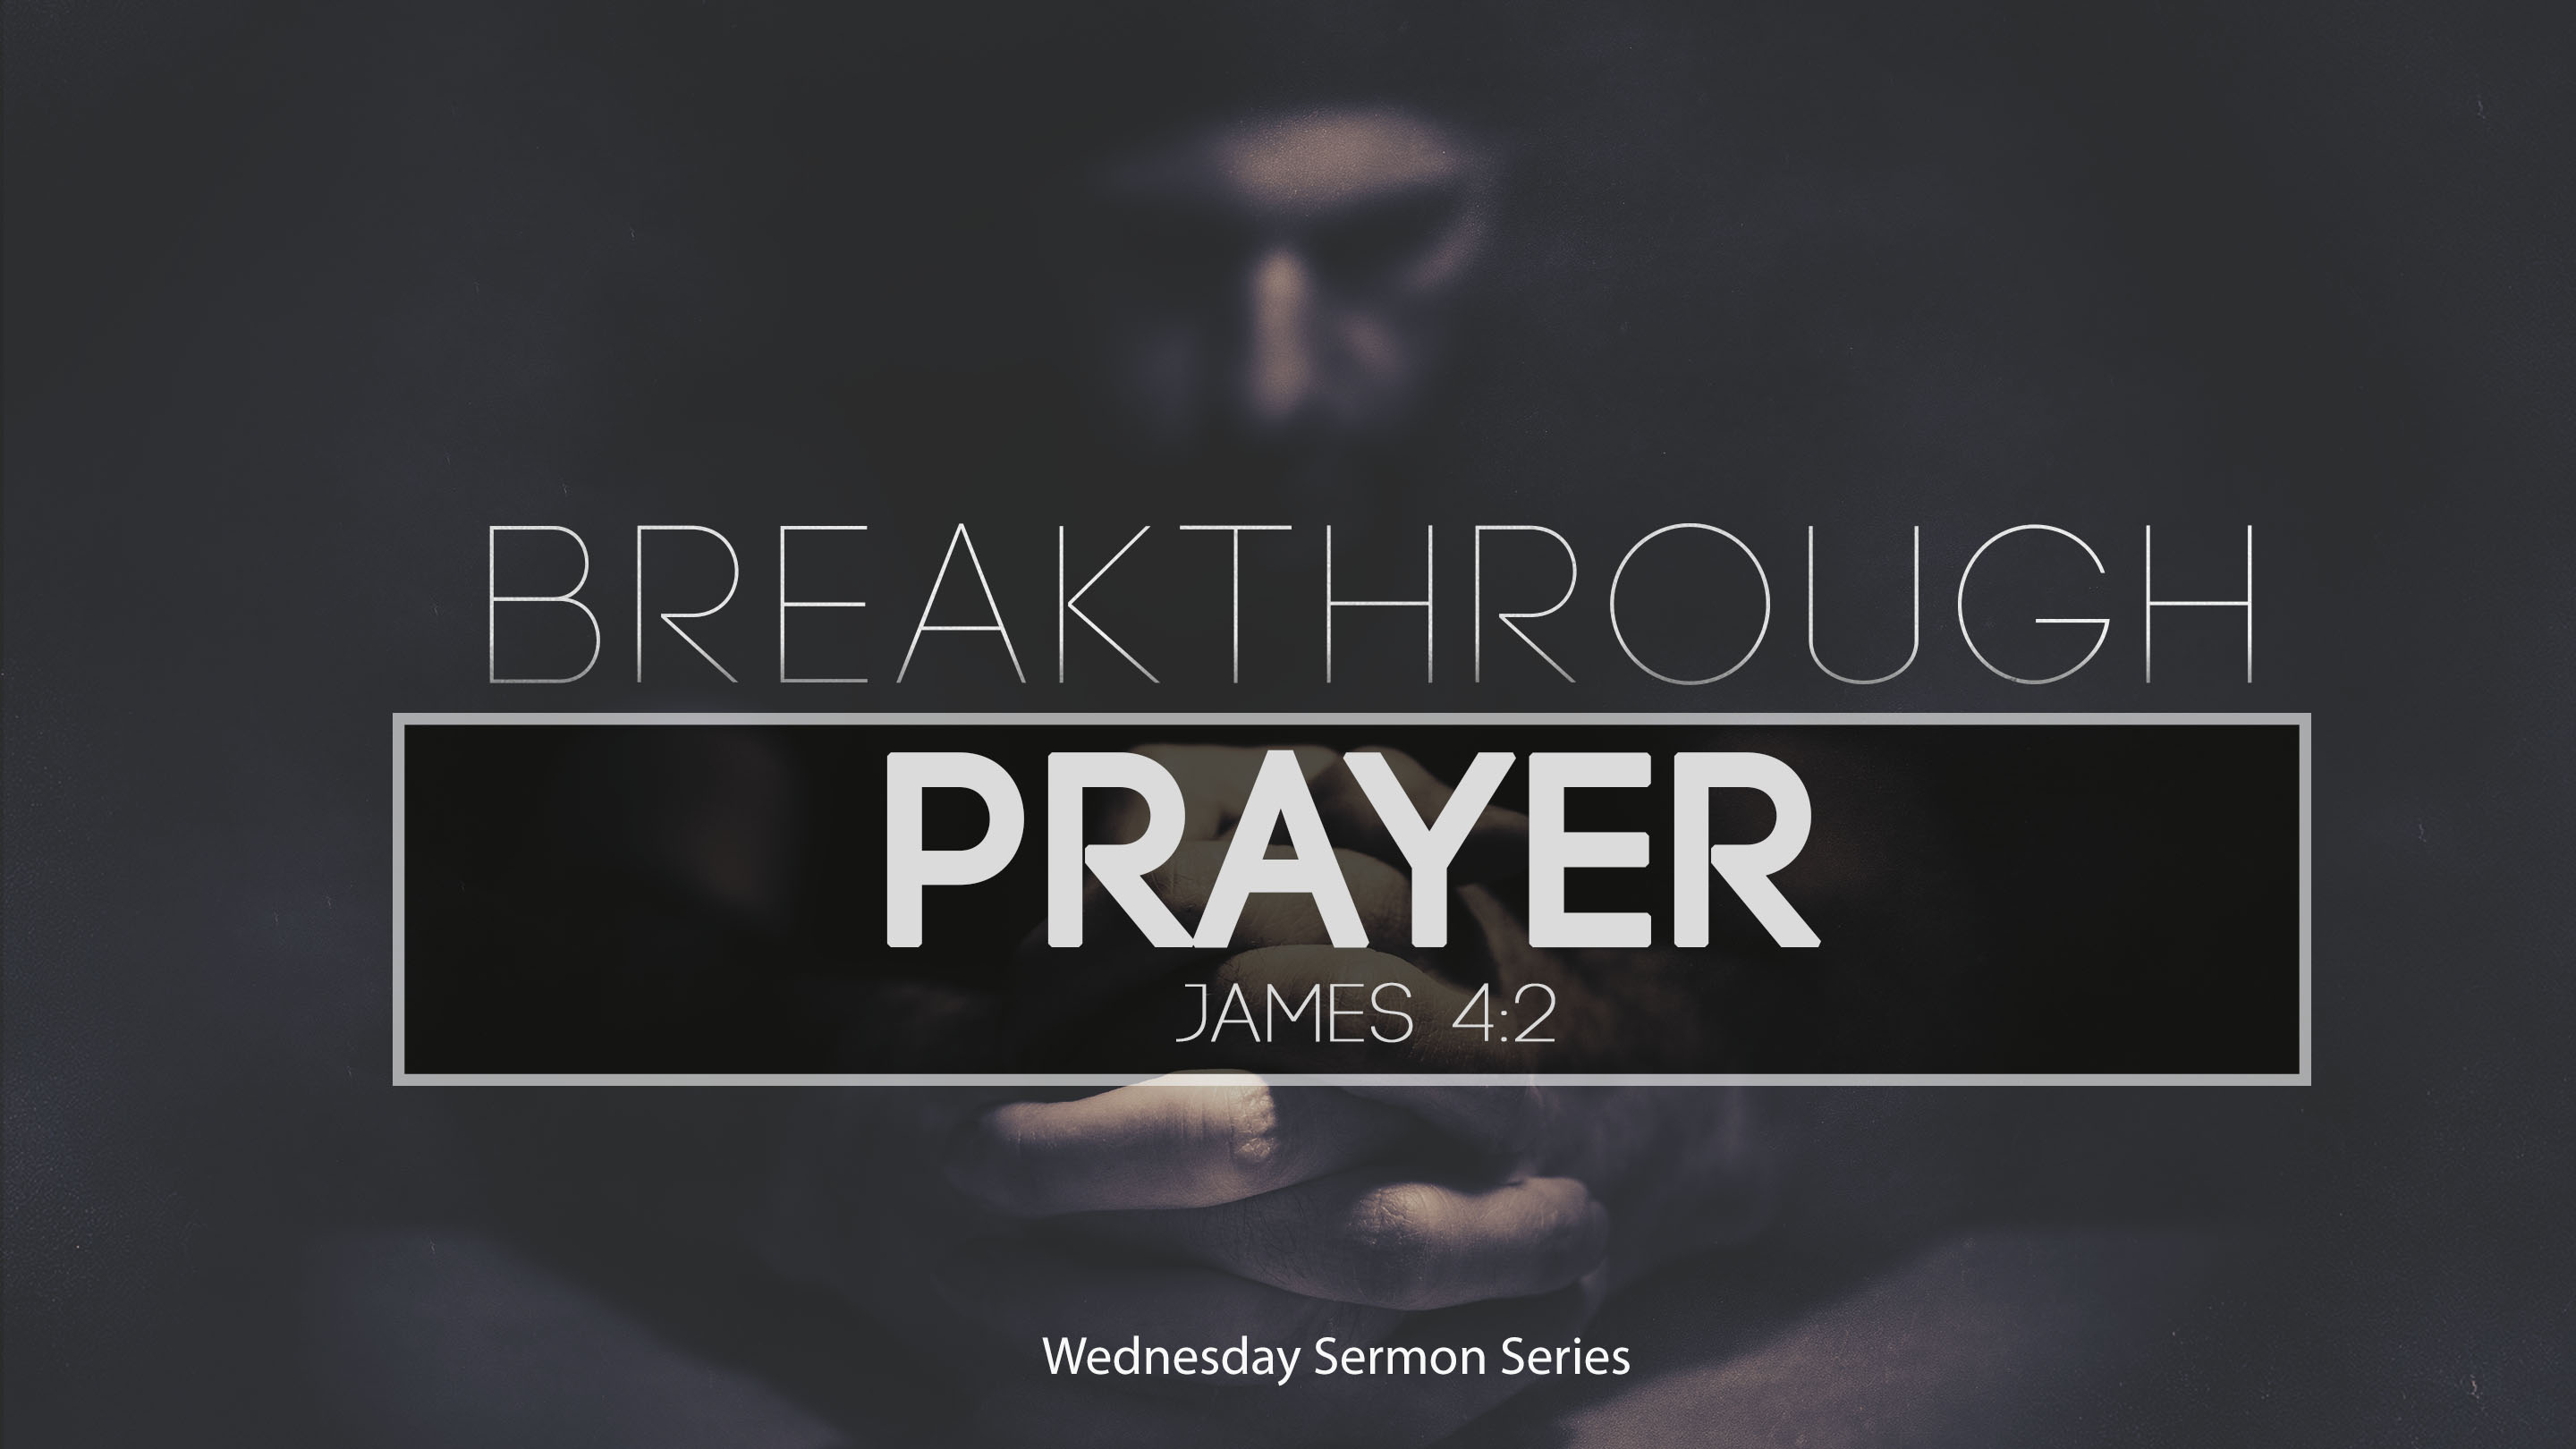 BREAKTHROUGHPRAYER